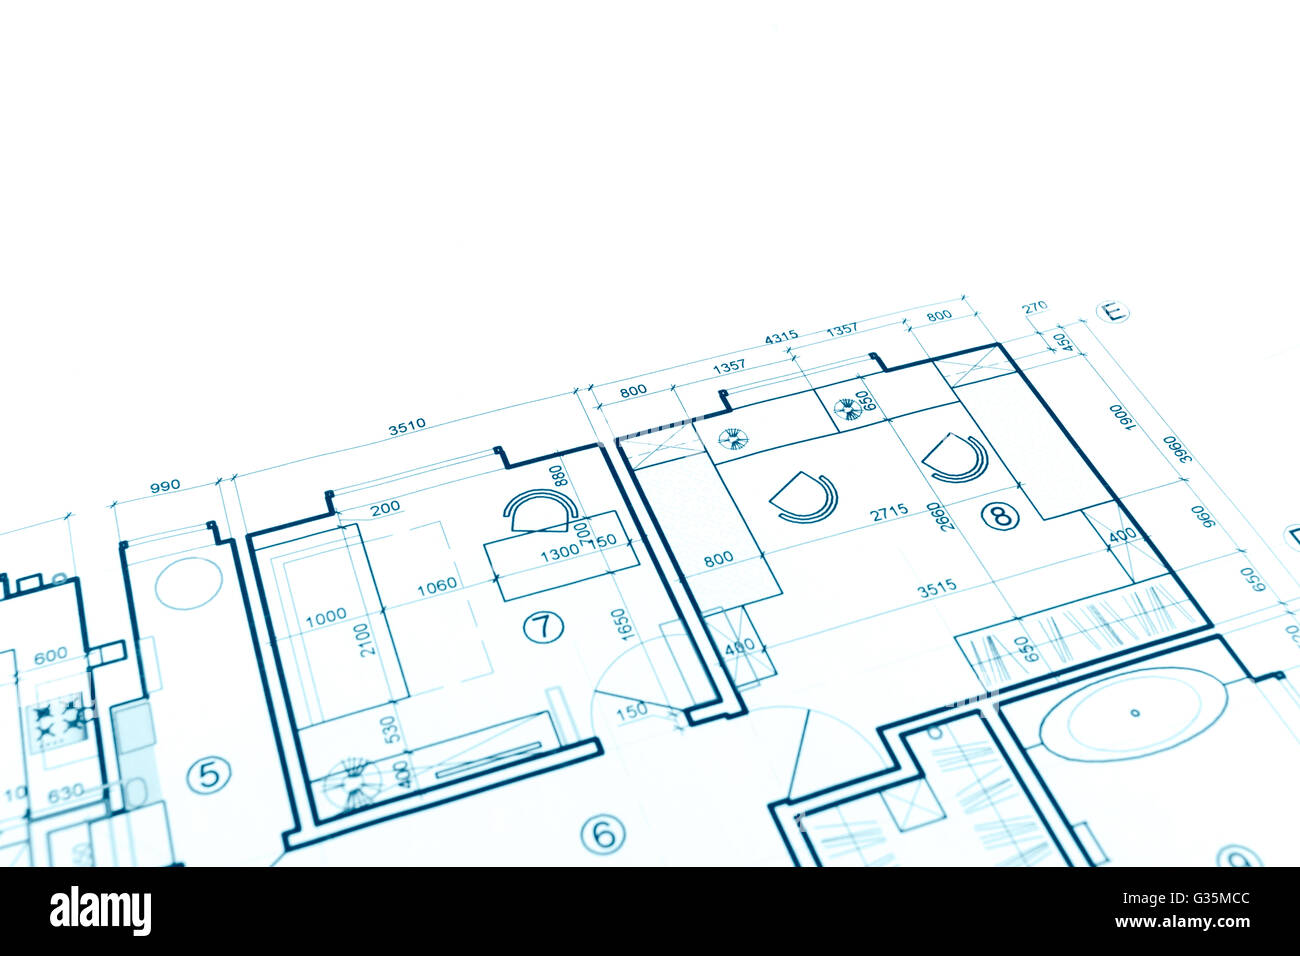 Floor plan blueprint blueprints background architecture for Copy architectural plans